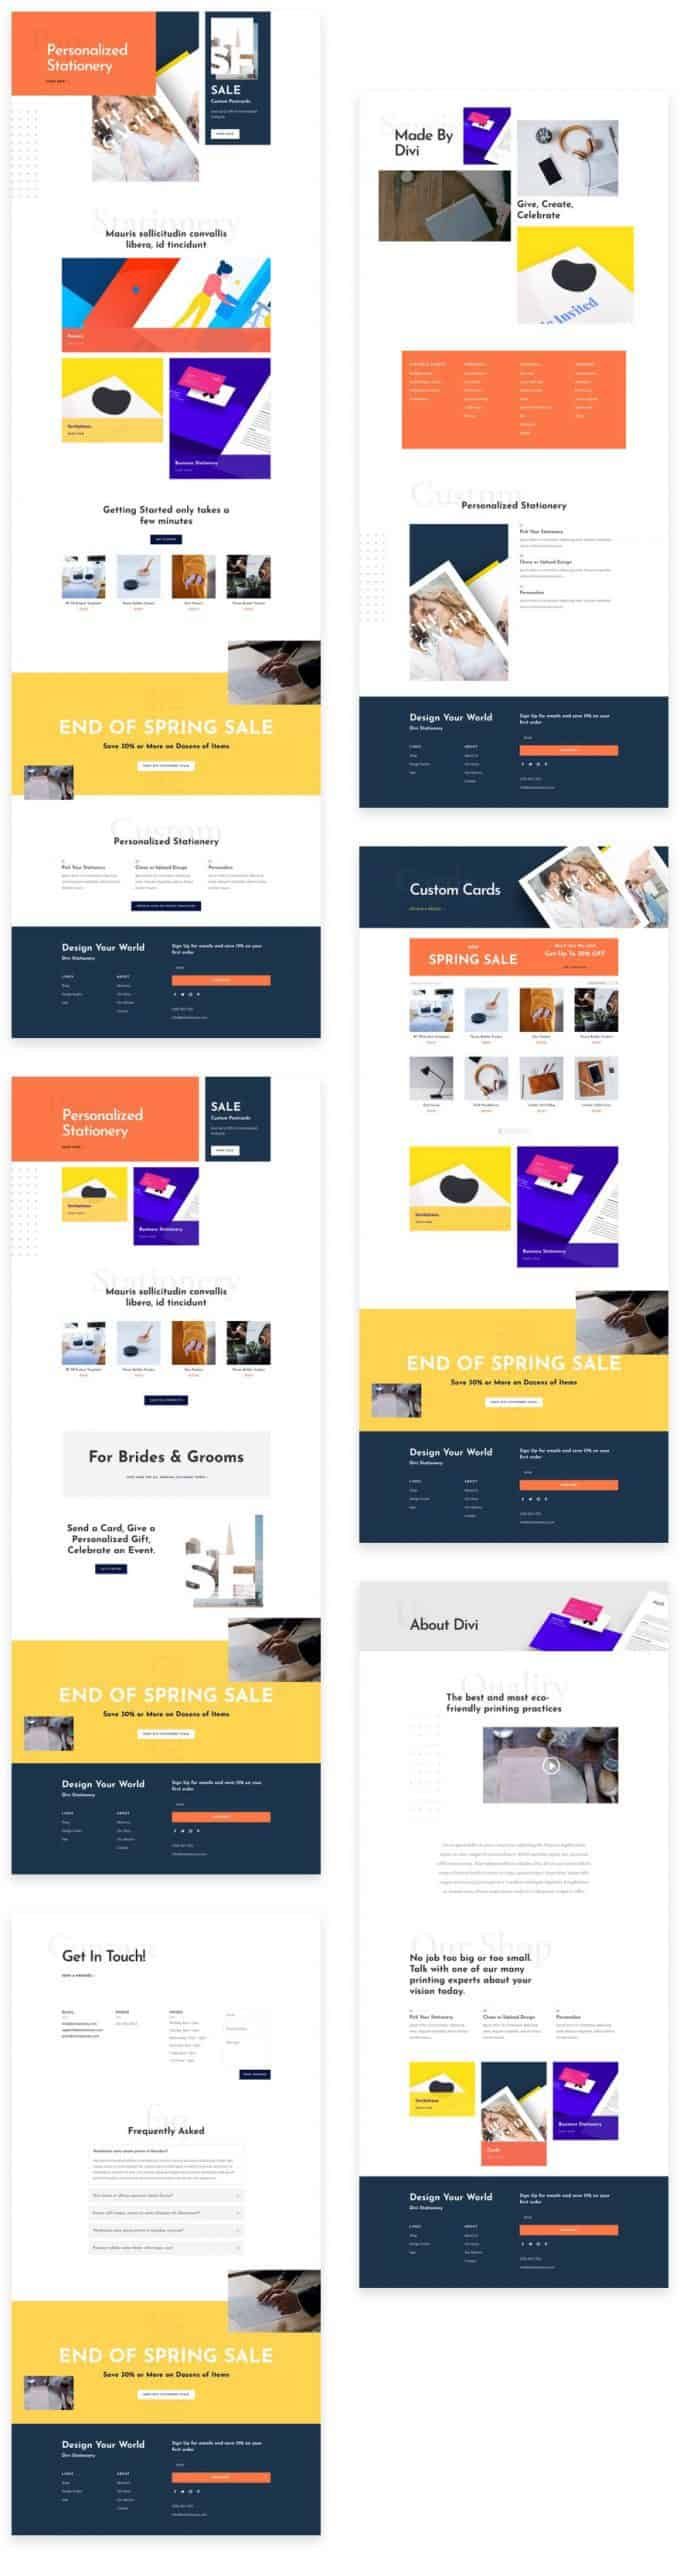 Stationery Shop Divi Layout Pack